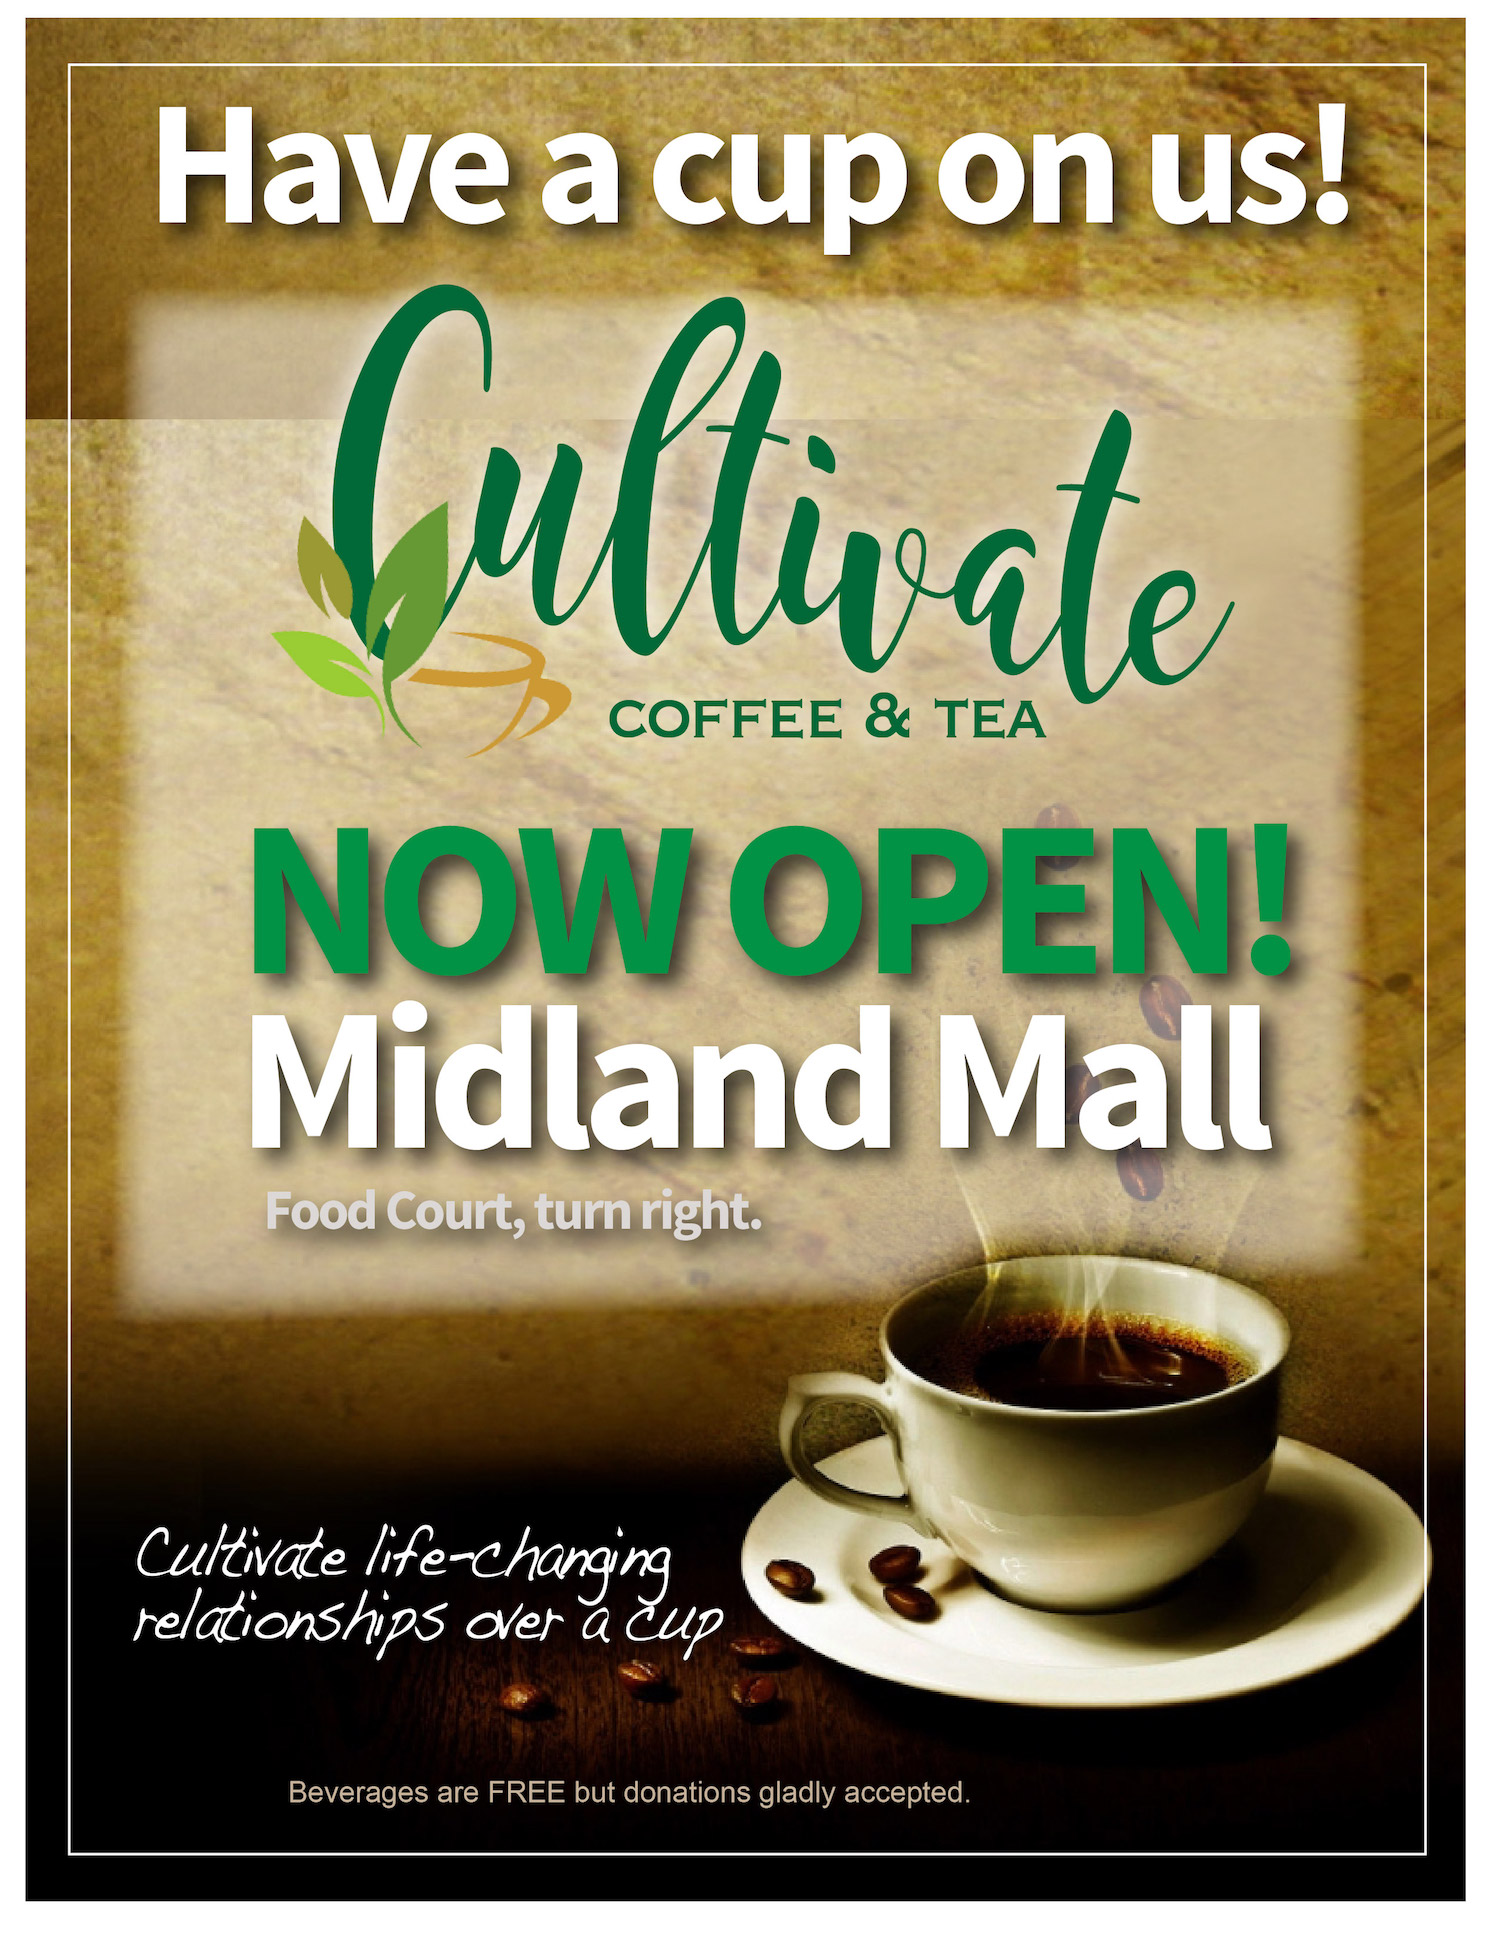 cup of coffee with information about Cultivate Coffee & Tea